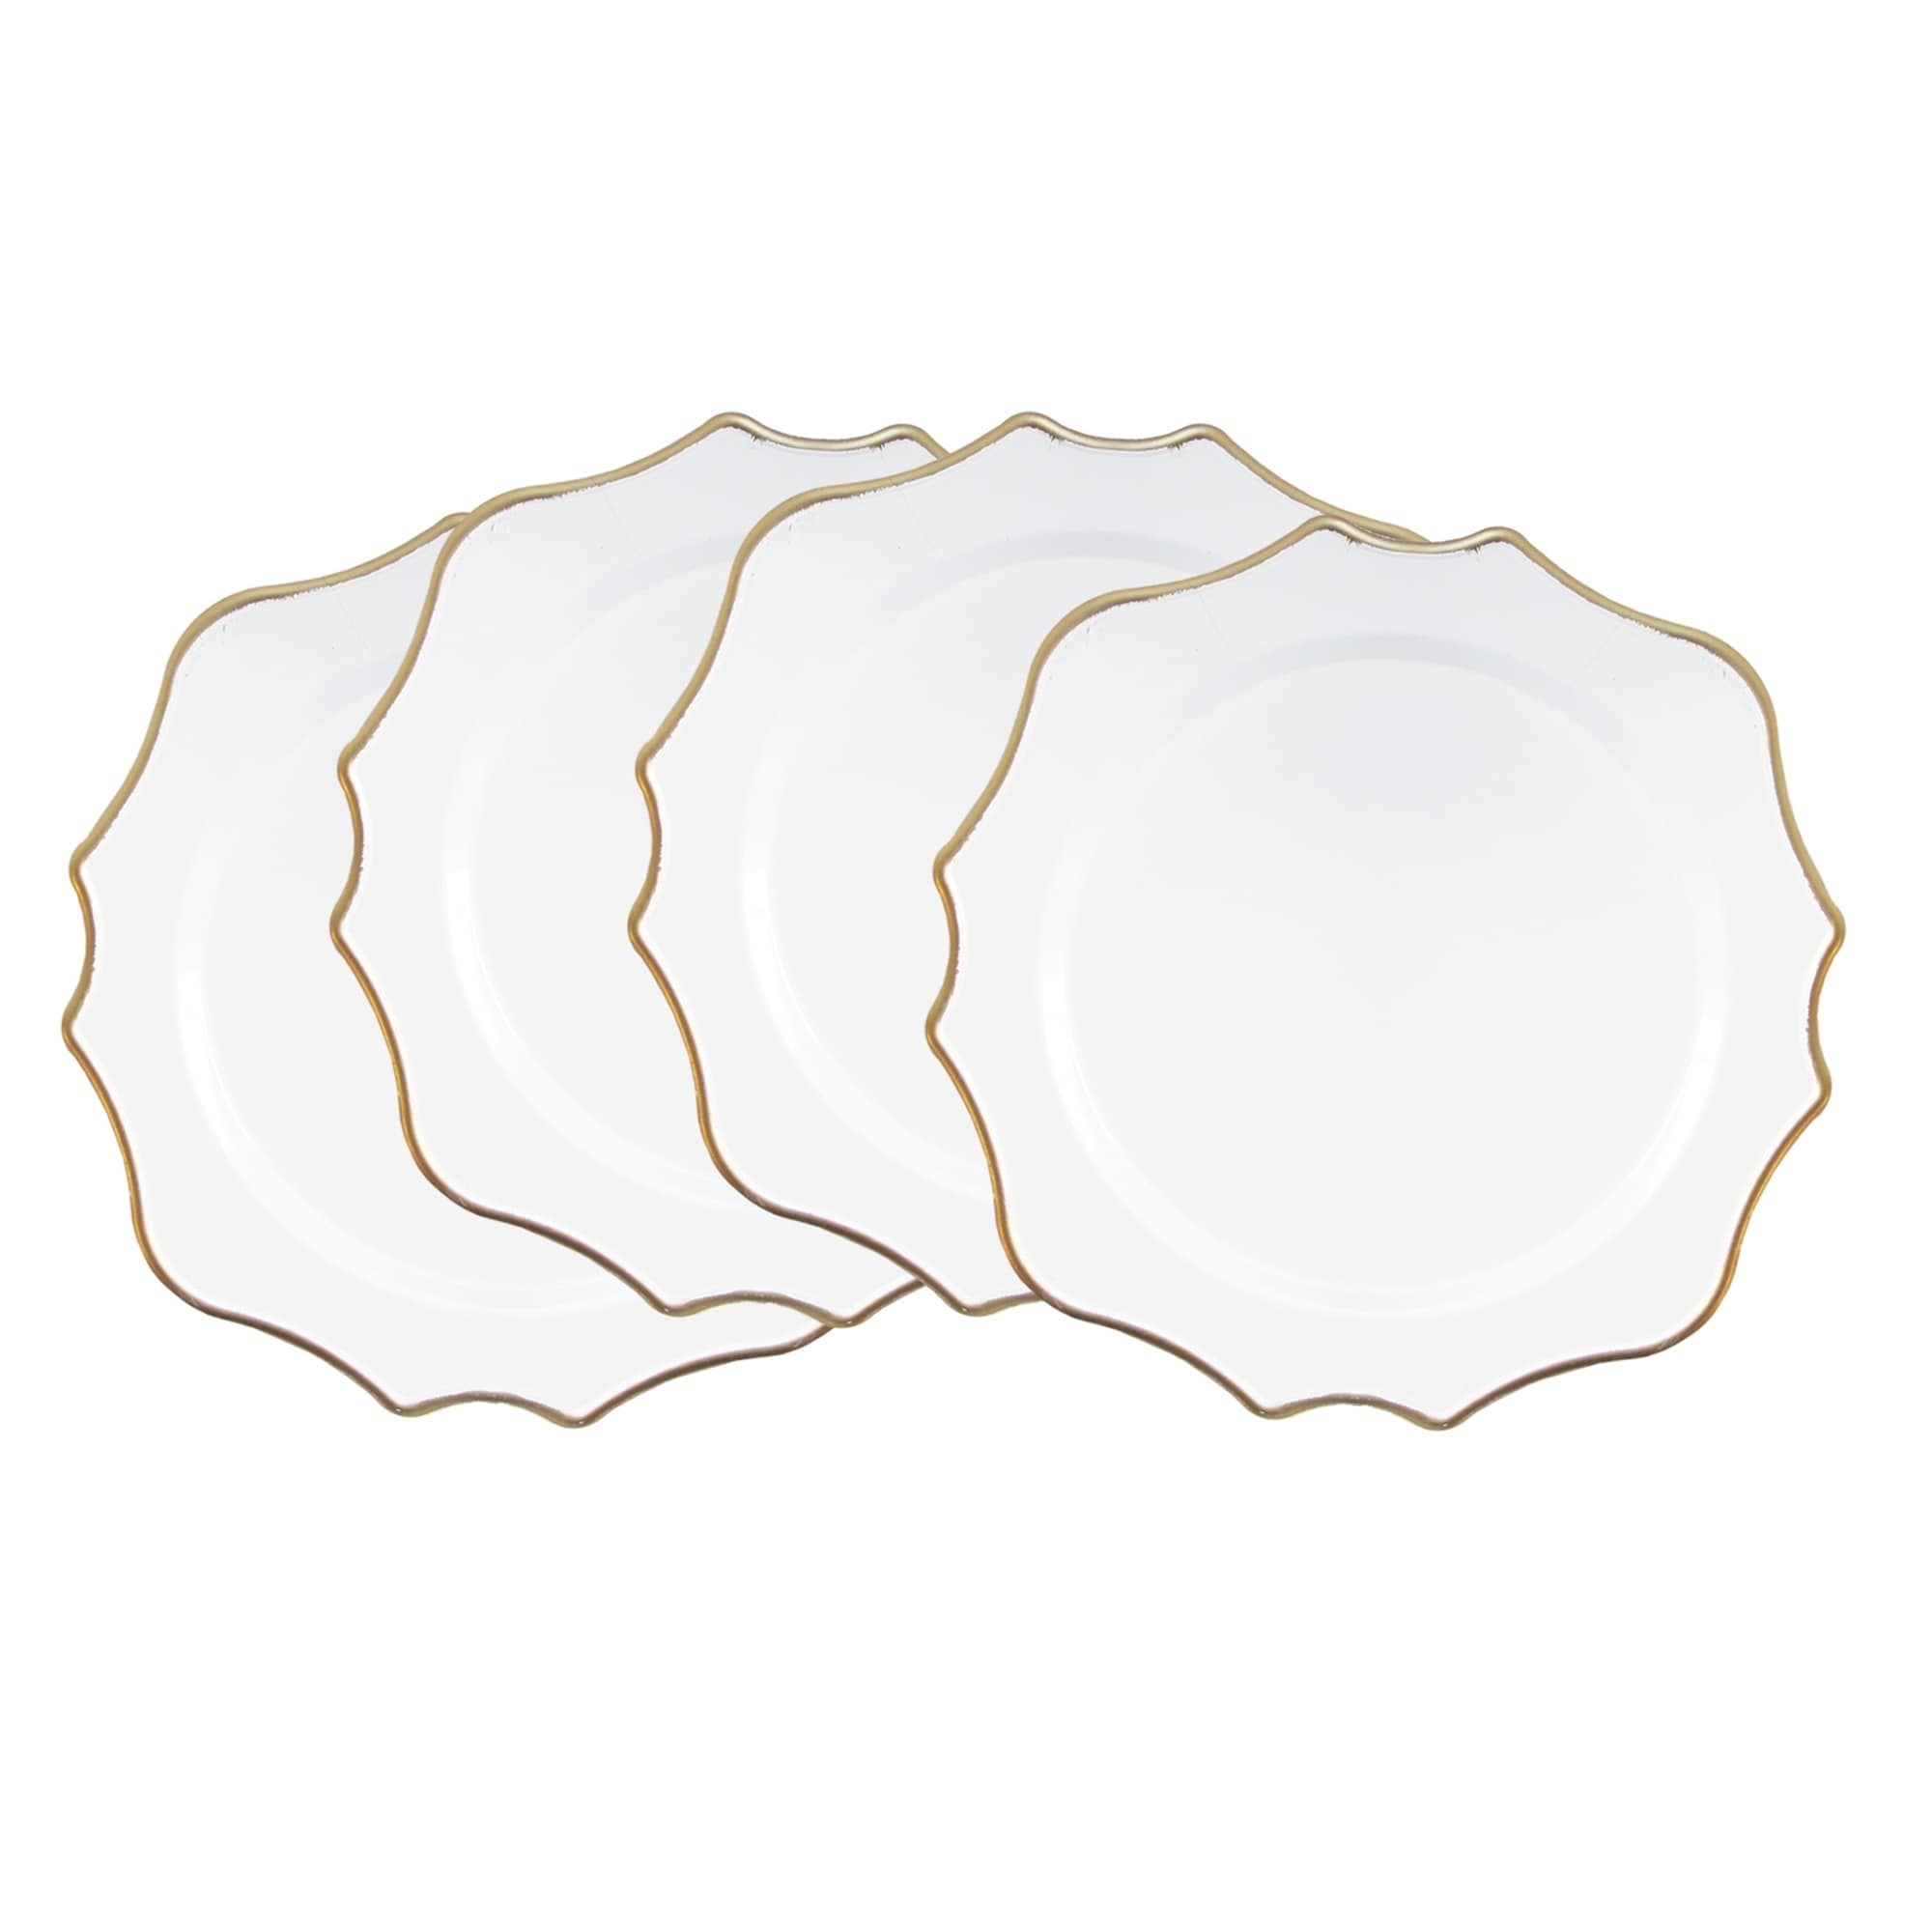 American Atelier Princess White Gold 13 Inch Charger Plate Set Of 4 Overstock 30416924